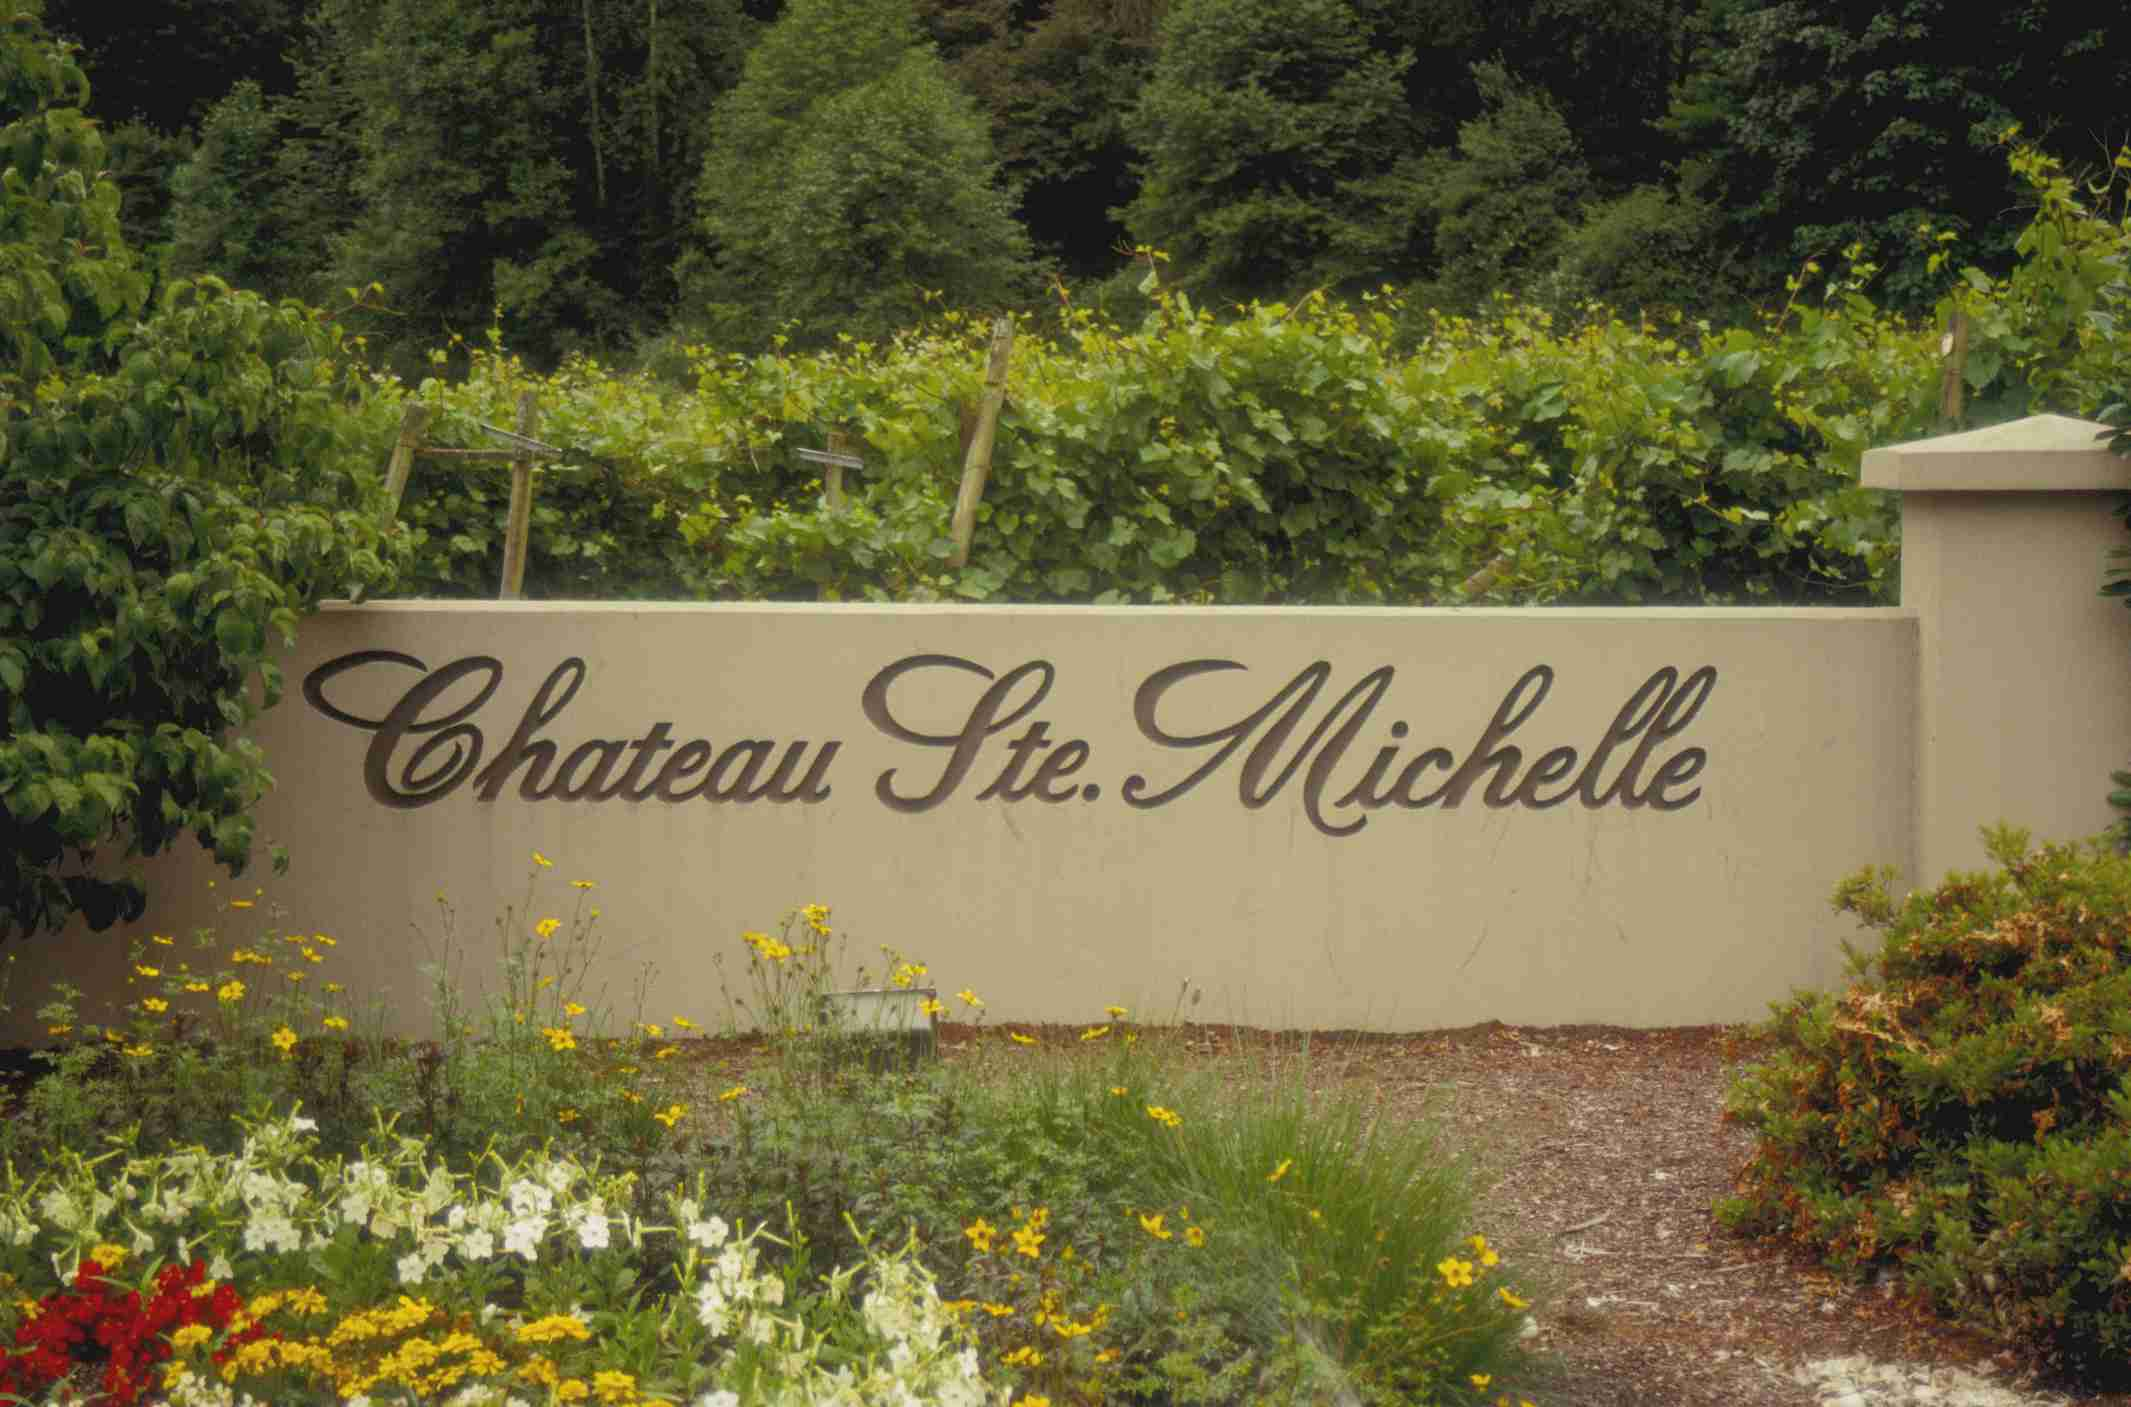 Chateau Ste. Michelle in Woodinville